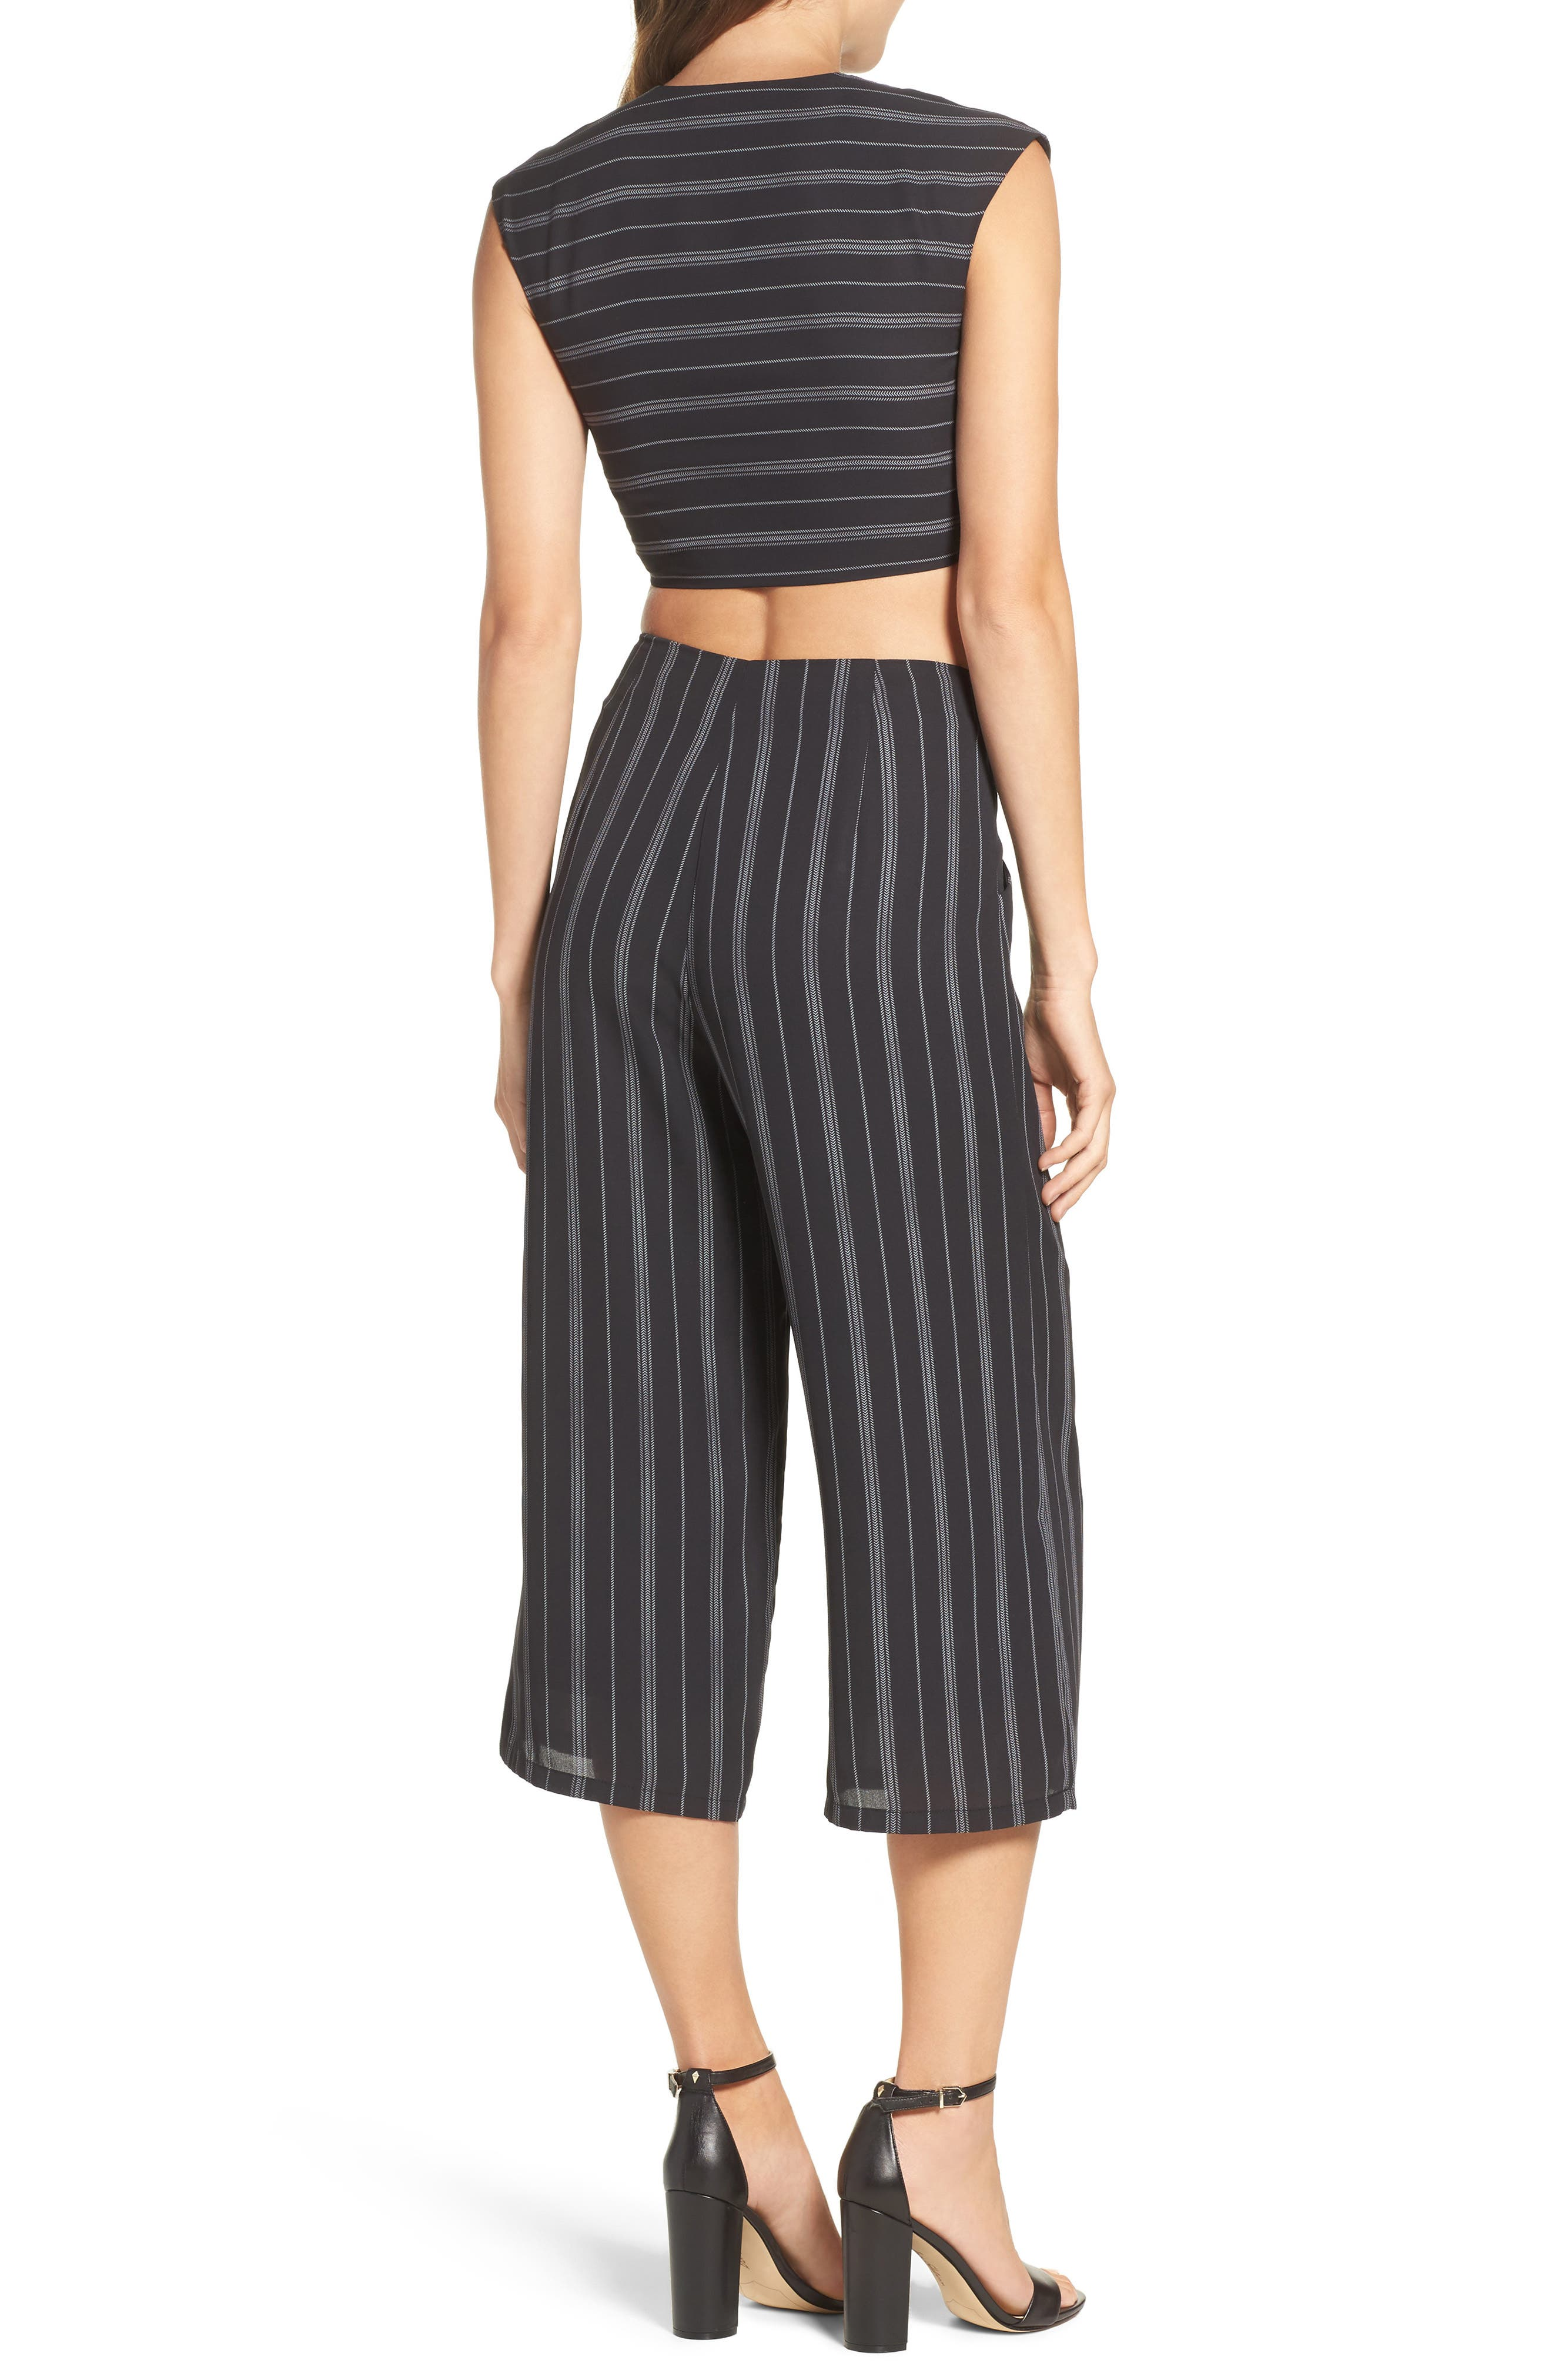 Poolside Periodicals Crop Top & Culottes Set,                             Alternate thumbnail 3, color,                             Black Stripe